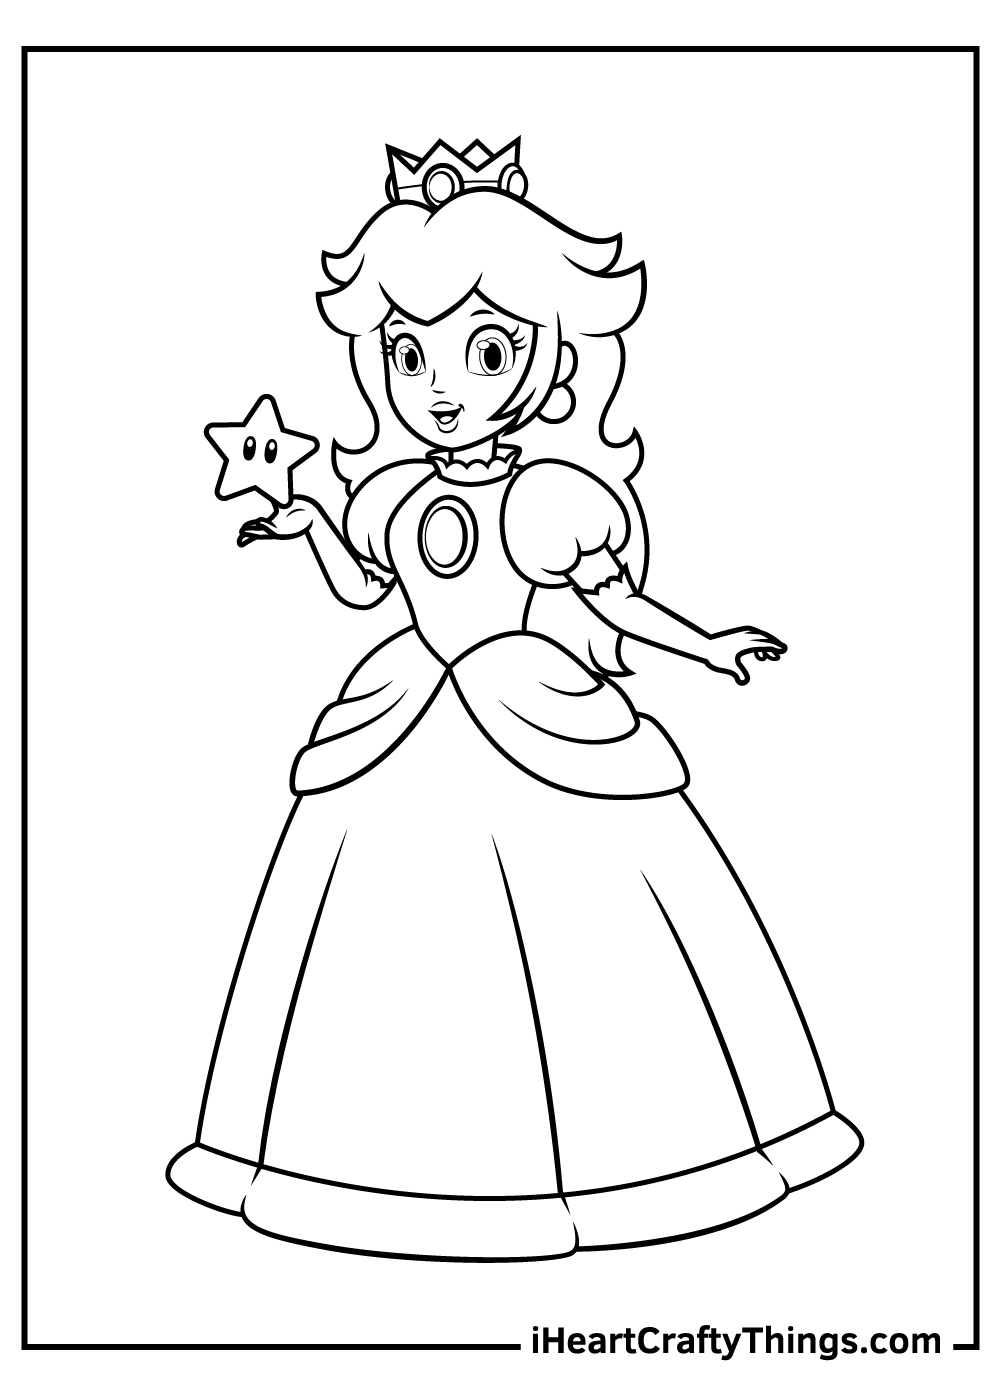 free princess peach coloring pages for girls